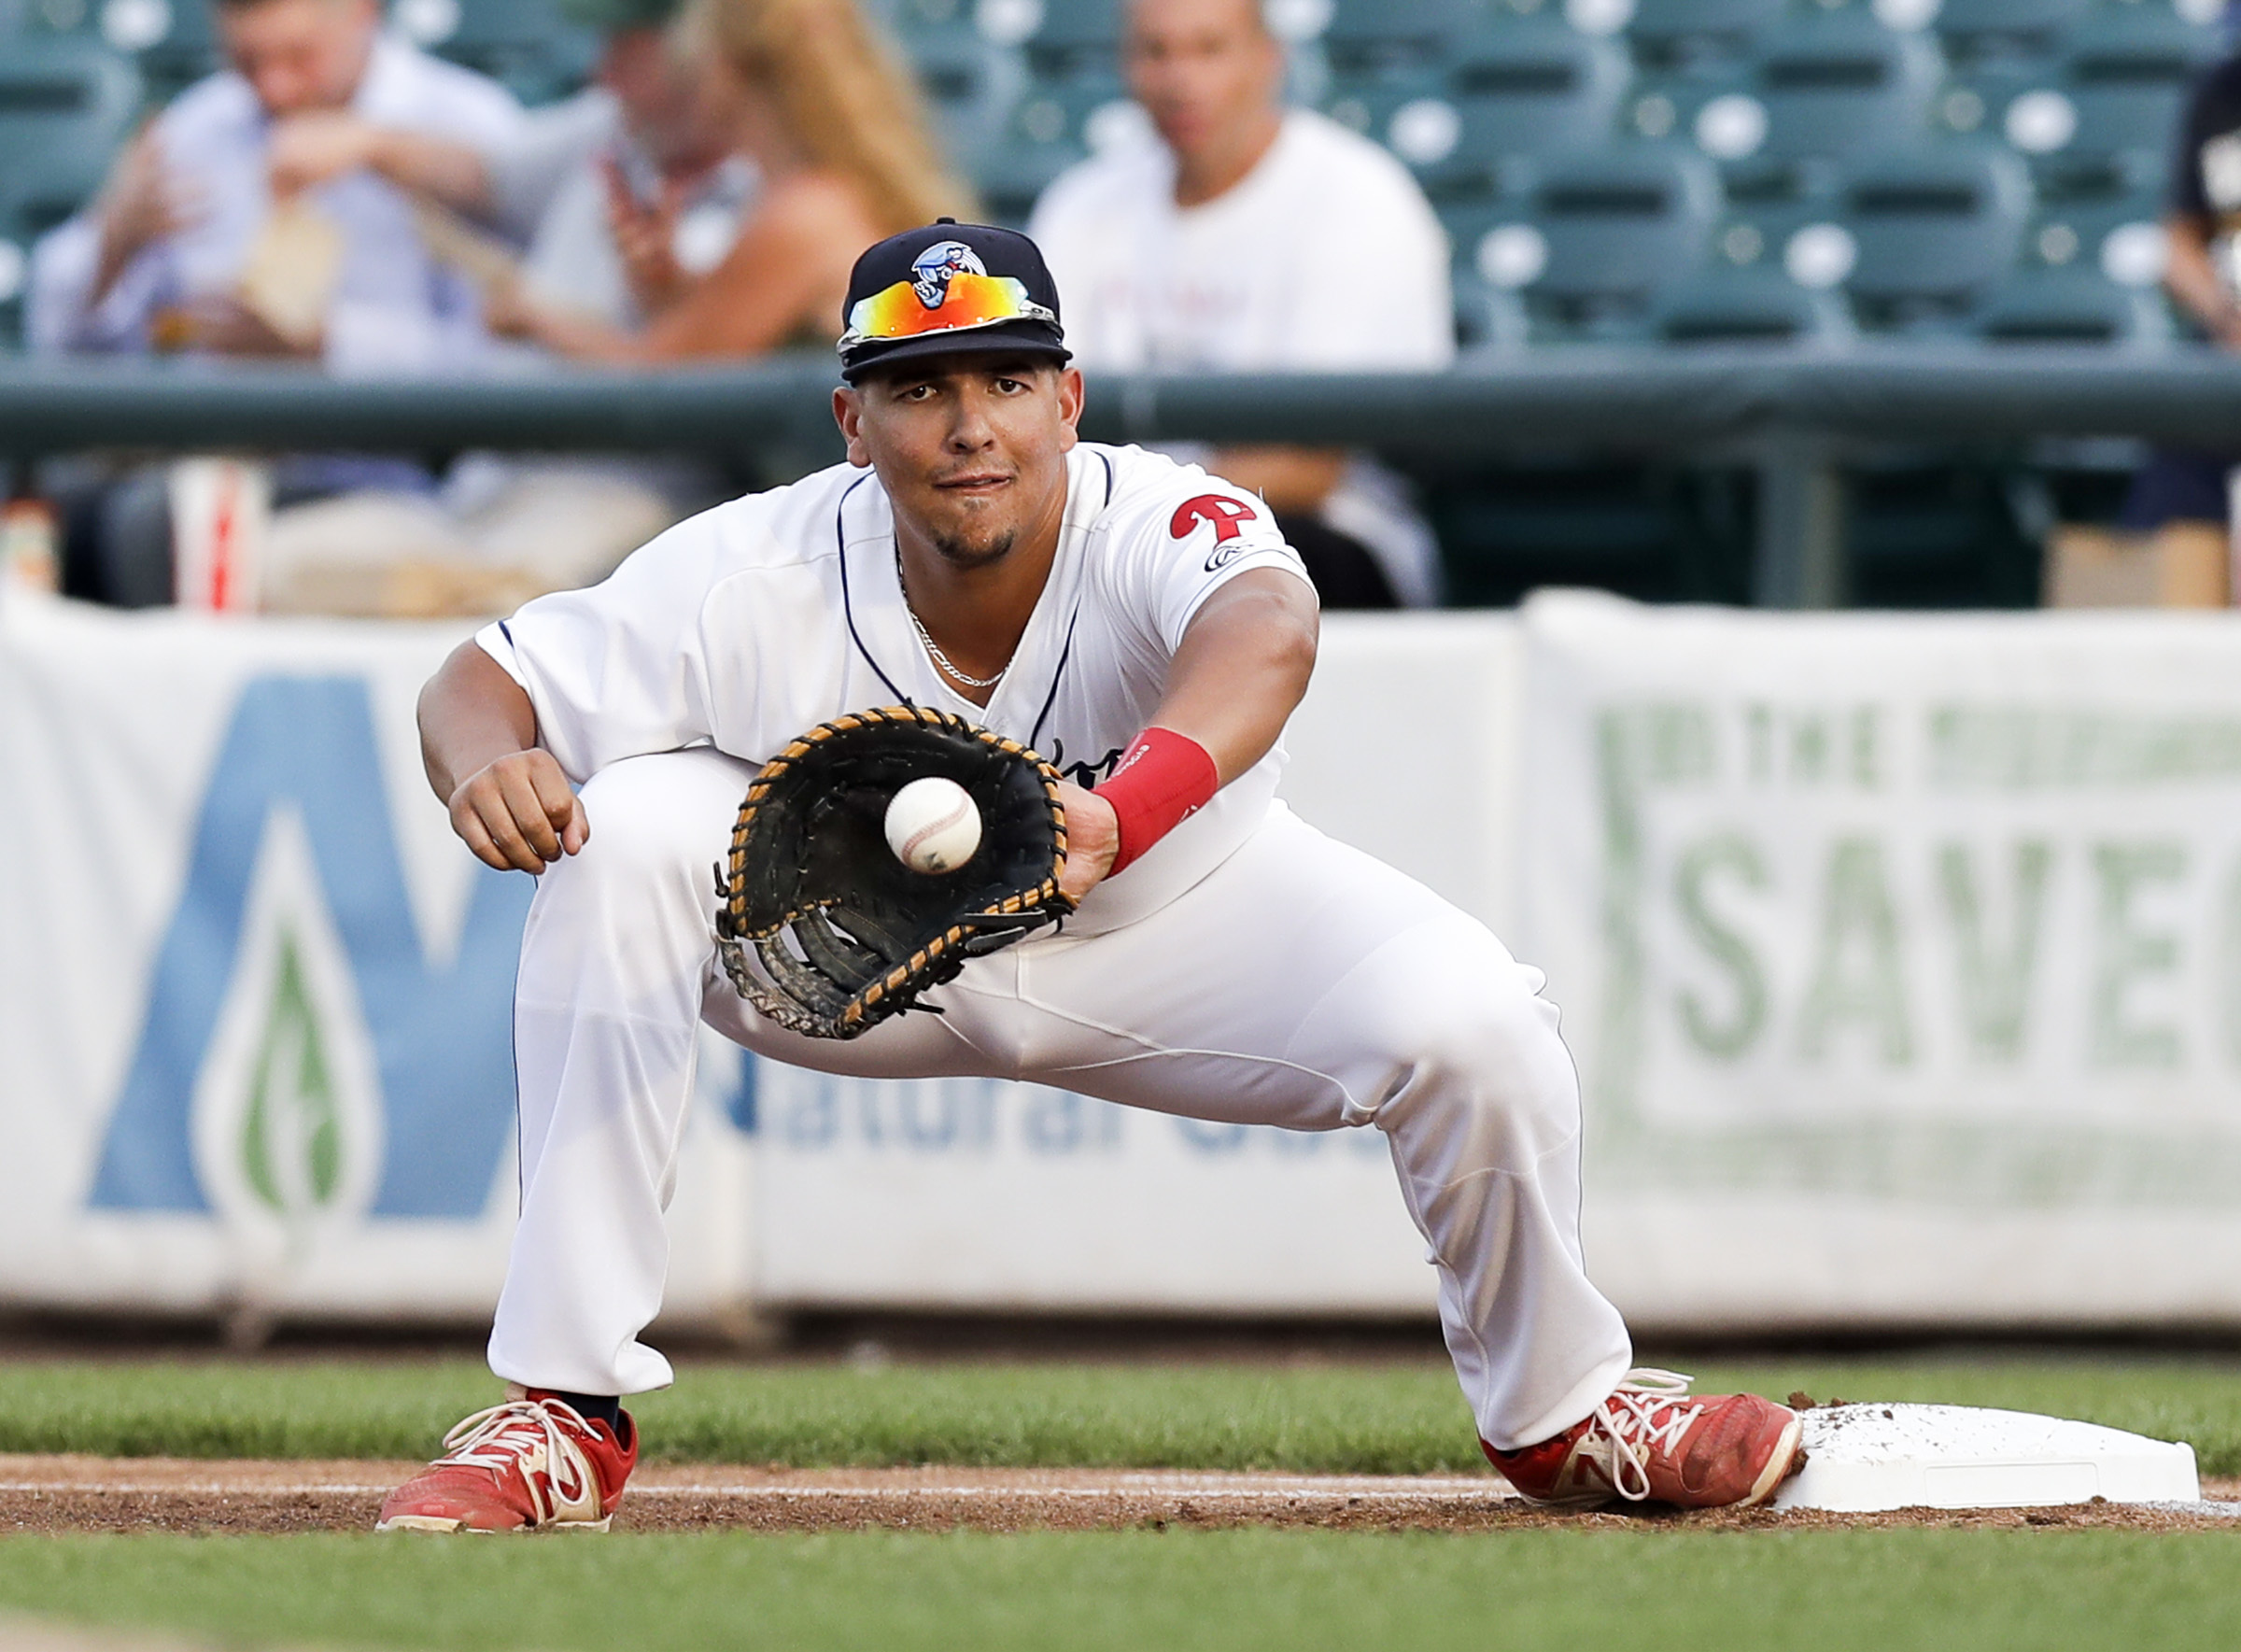 Darick Hall, shown here playing for the Lakewood BlueClaws in 2017, was the best first-base prospect in the Phillies system this year.